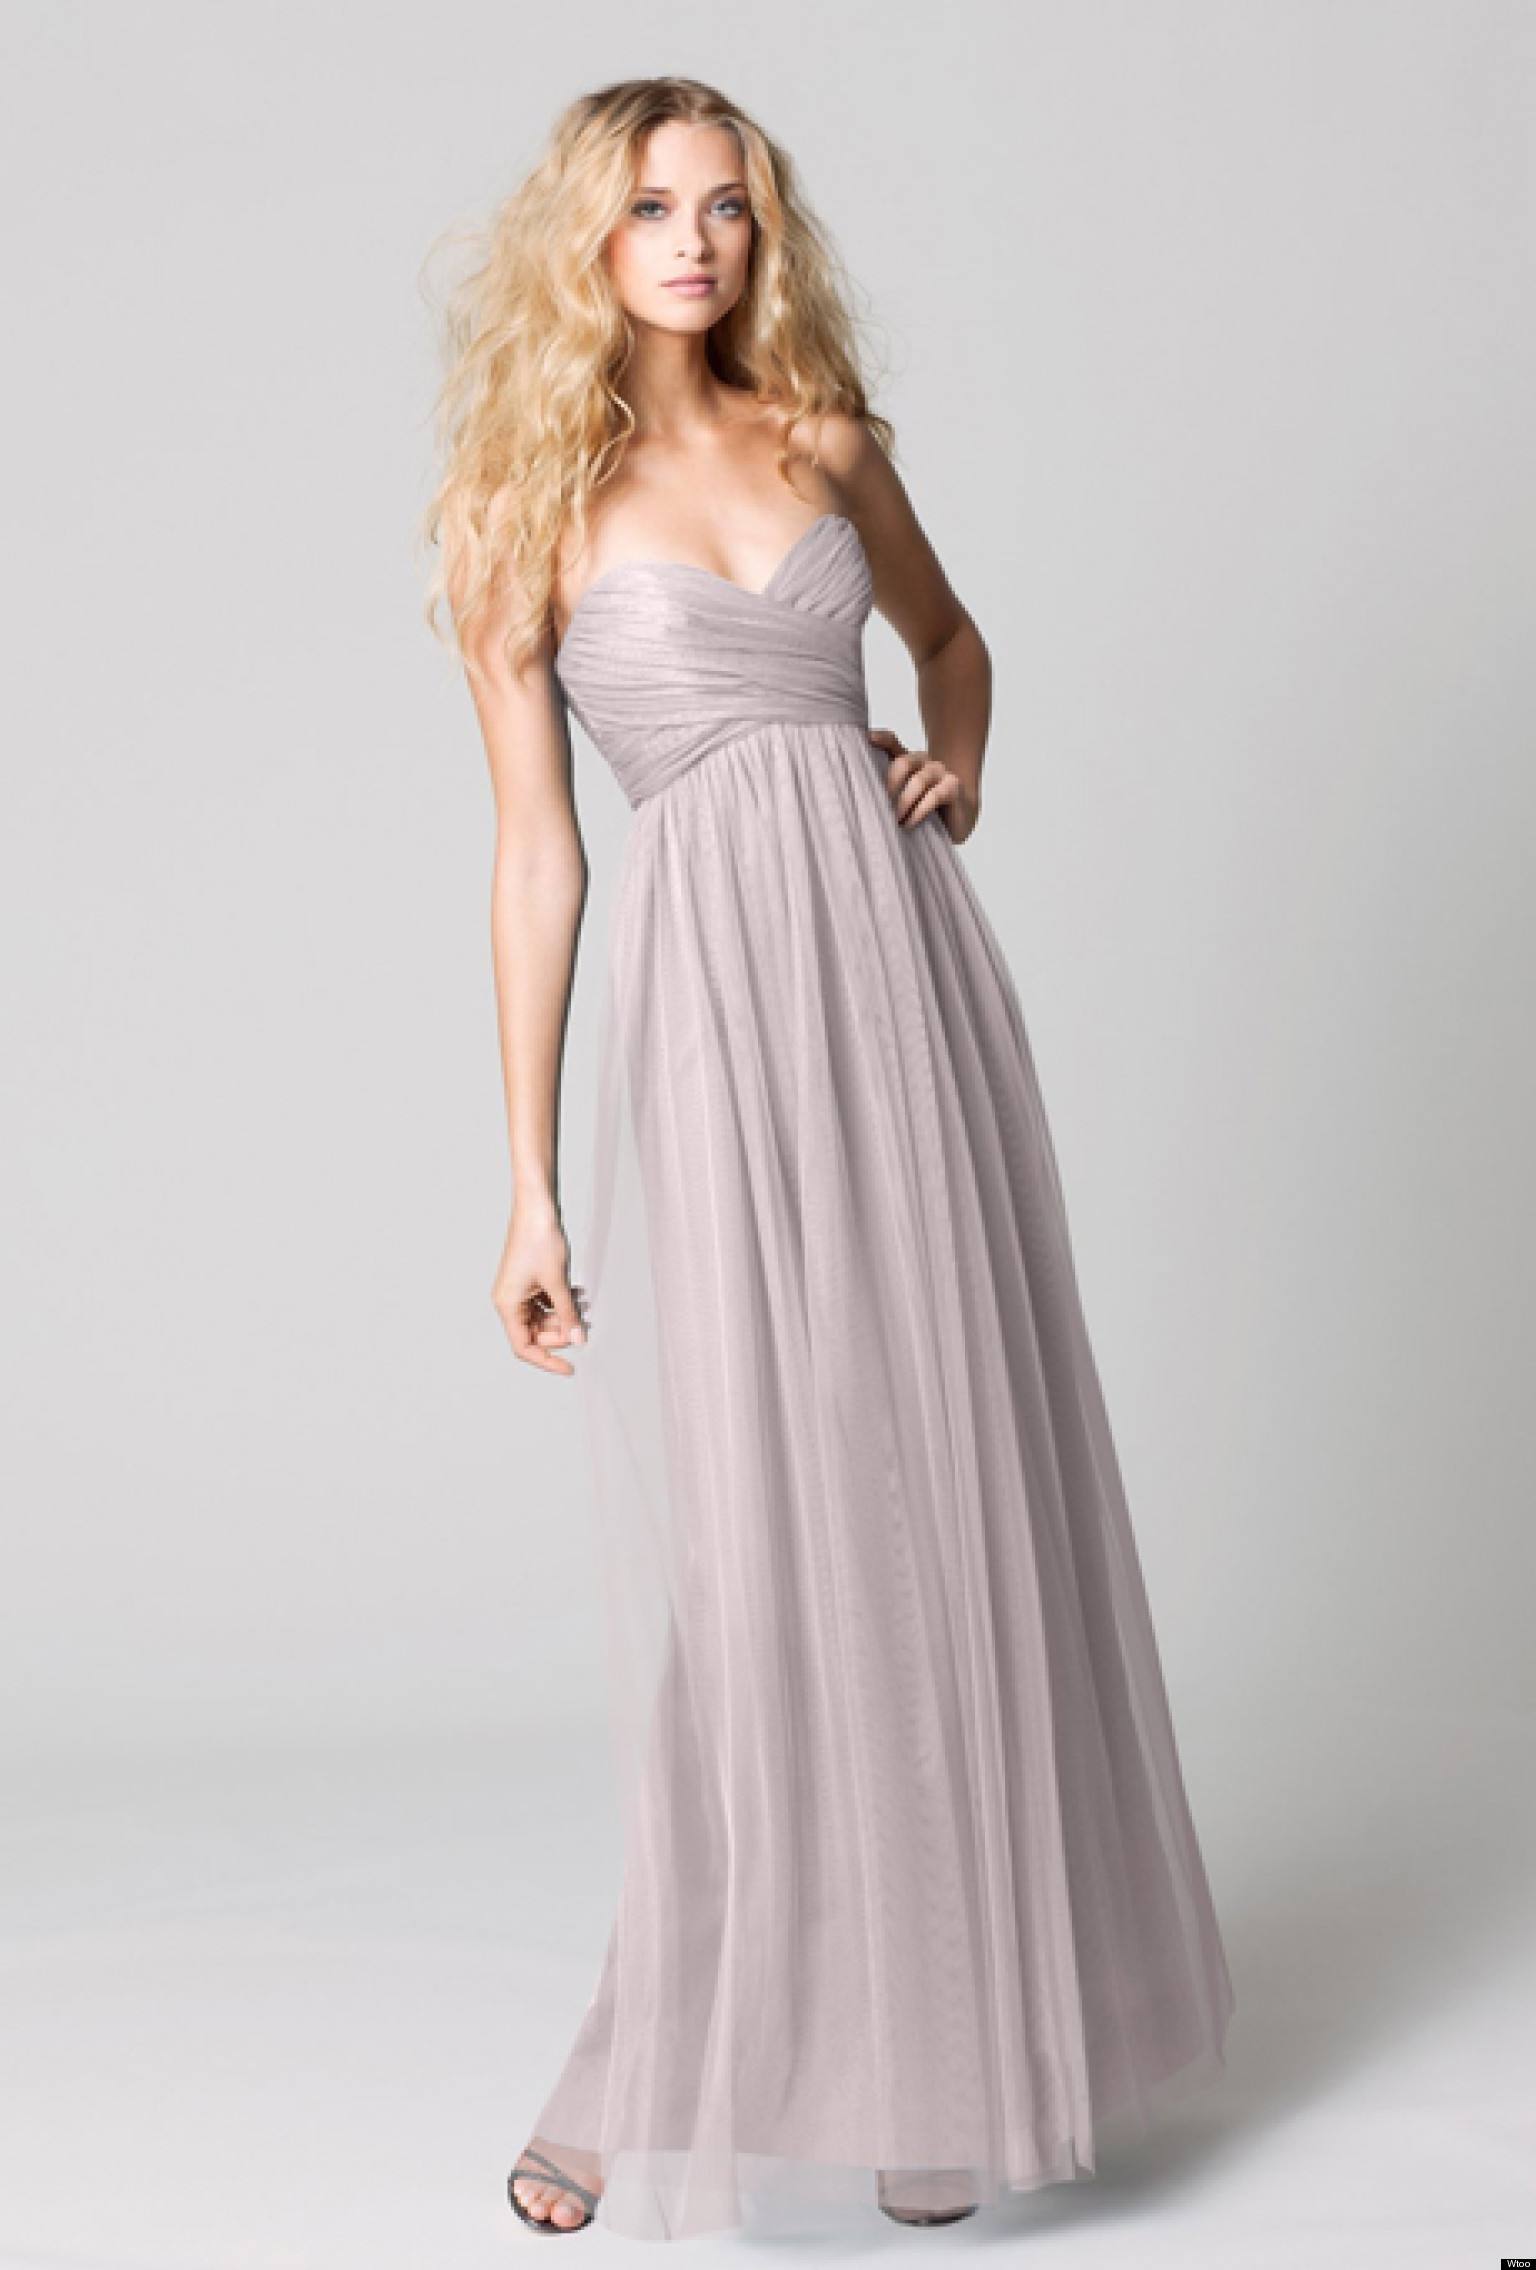 15 must see pastel bridesmaids dresses brides for Pastel colored wedding dresses